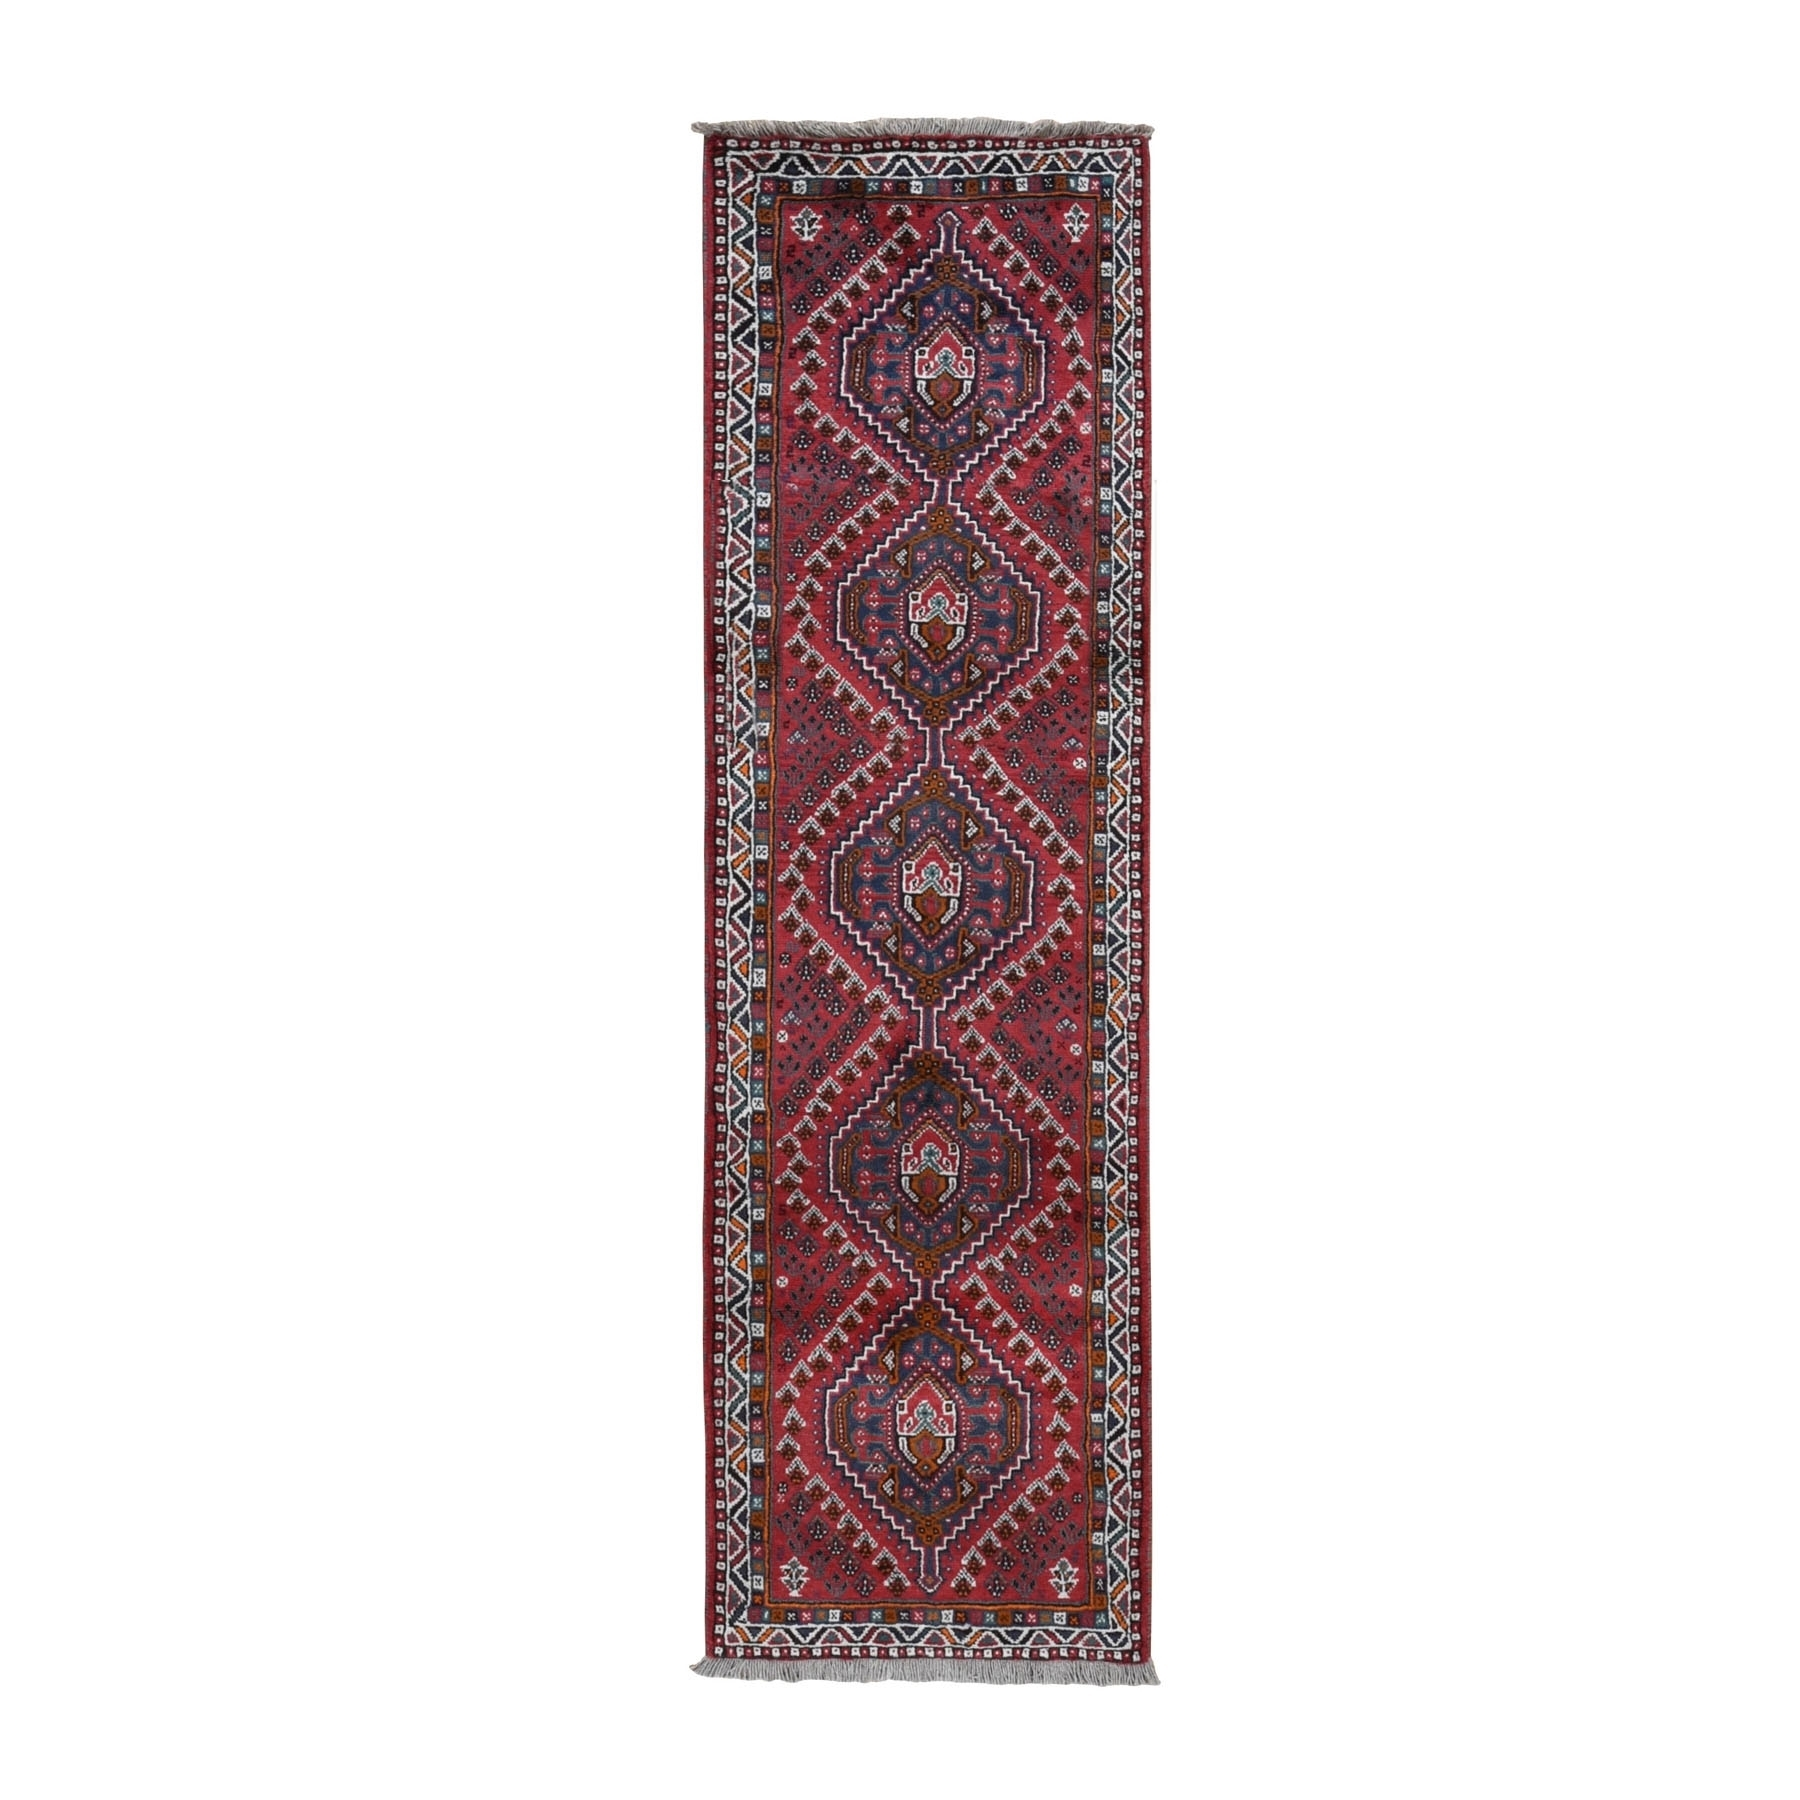 "2'9""X9'7"" Red New Persian Shiraz Pure Wool Runner Hand Knotted Tribal Design Bohemian Rug moad989e"